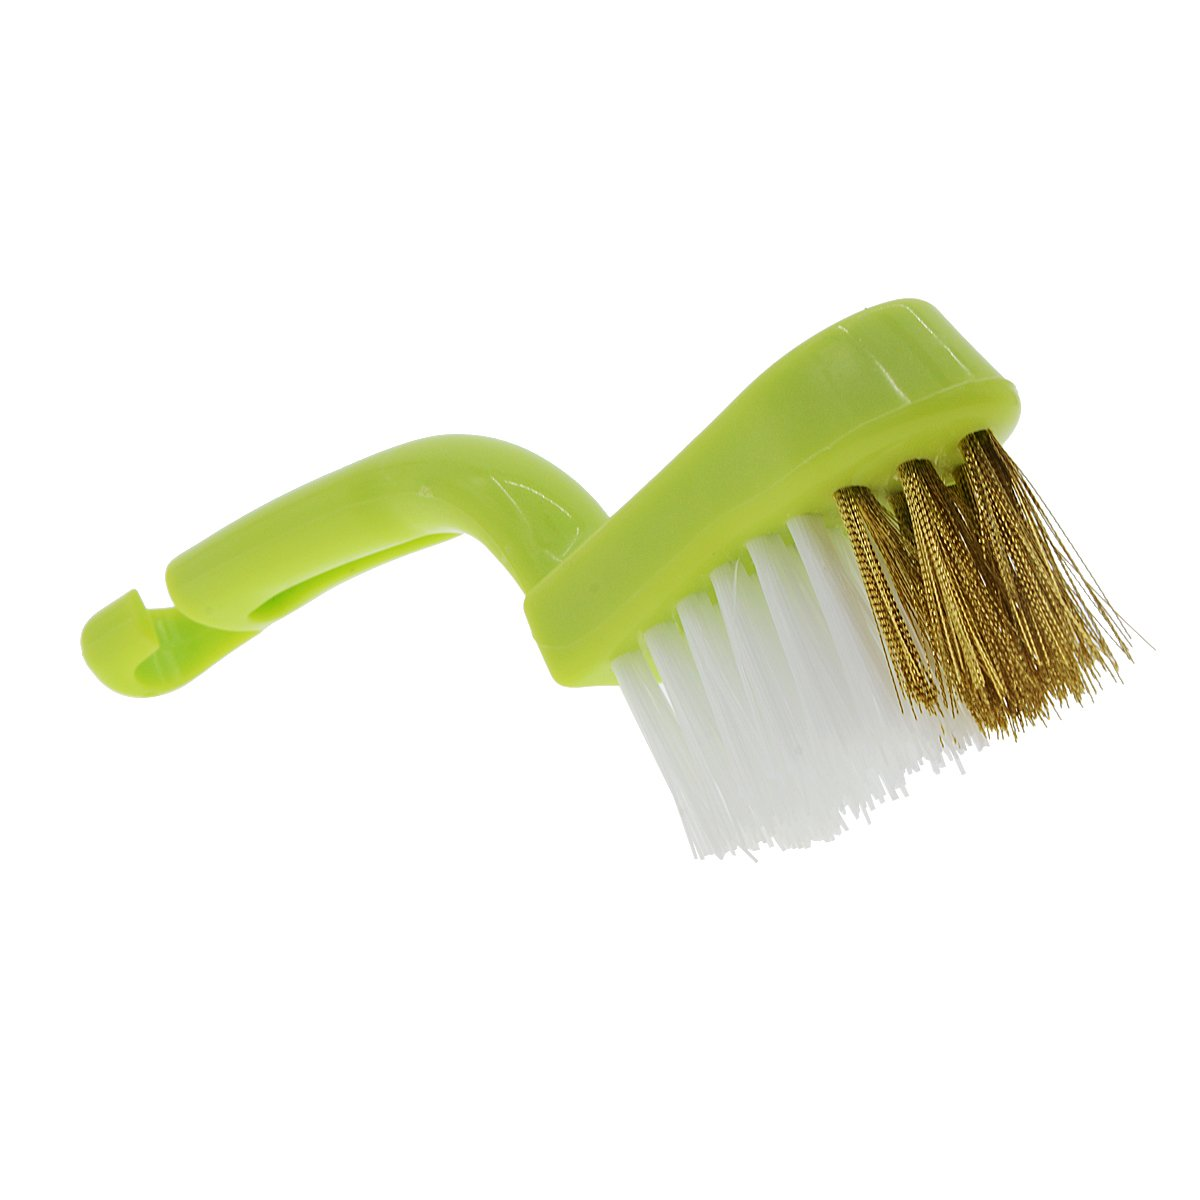 Saim Kitchen Stove Mini Cleaning Brush with Handle Front End Brass Wire Brush Suitable for Cup Kitchen Bathroom Gas Stove Faucets and Other Corner